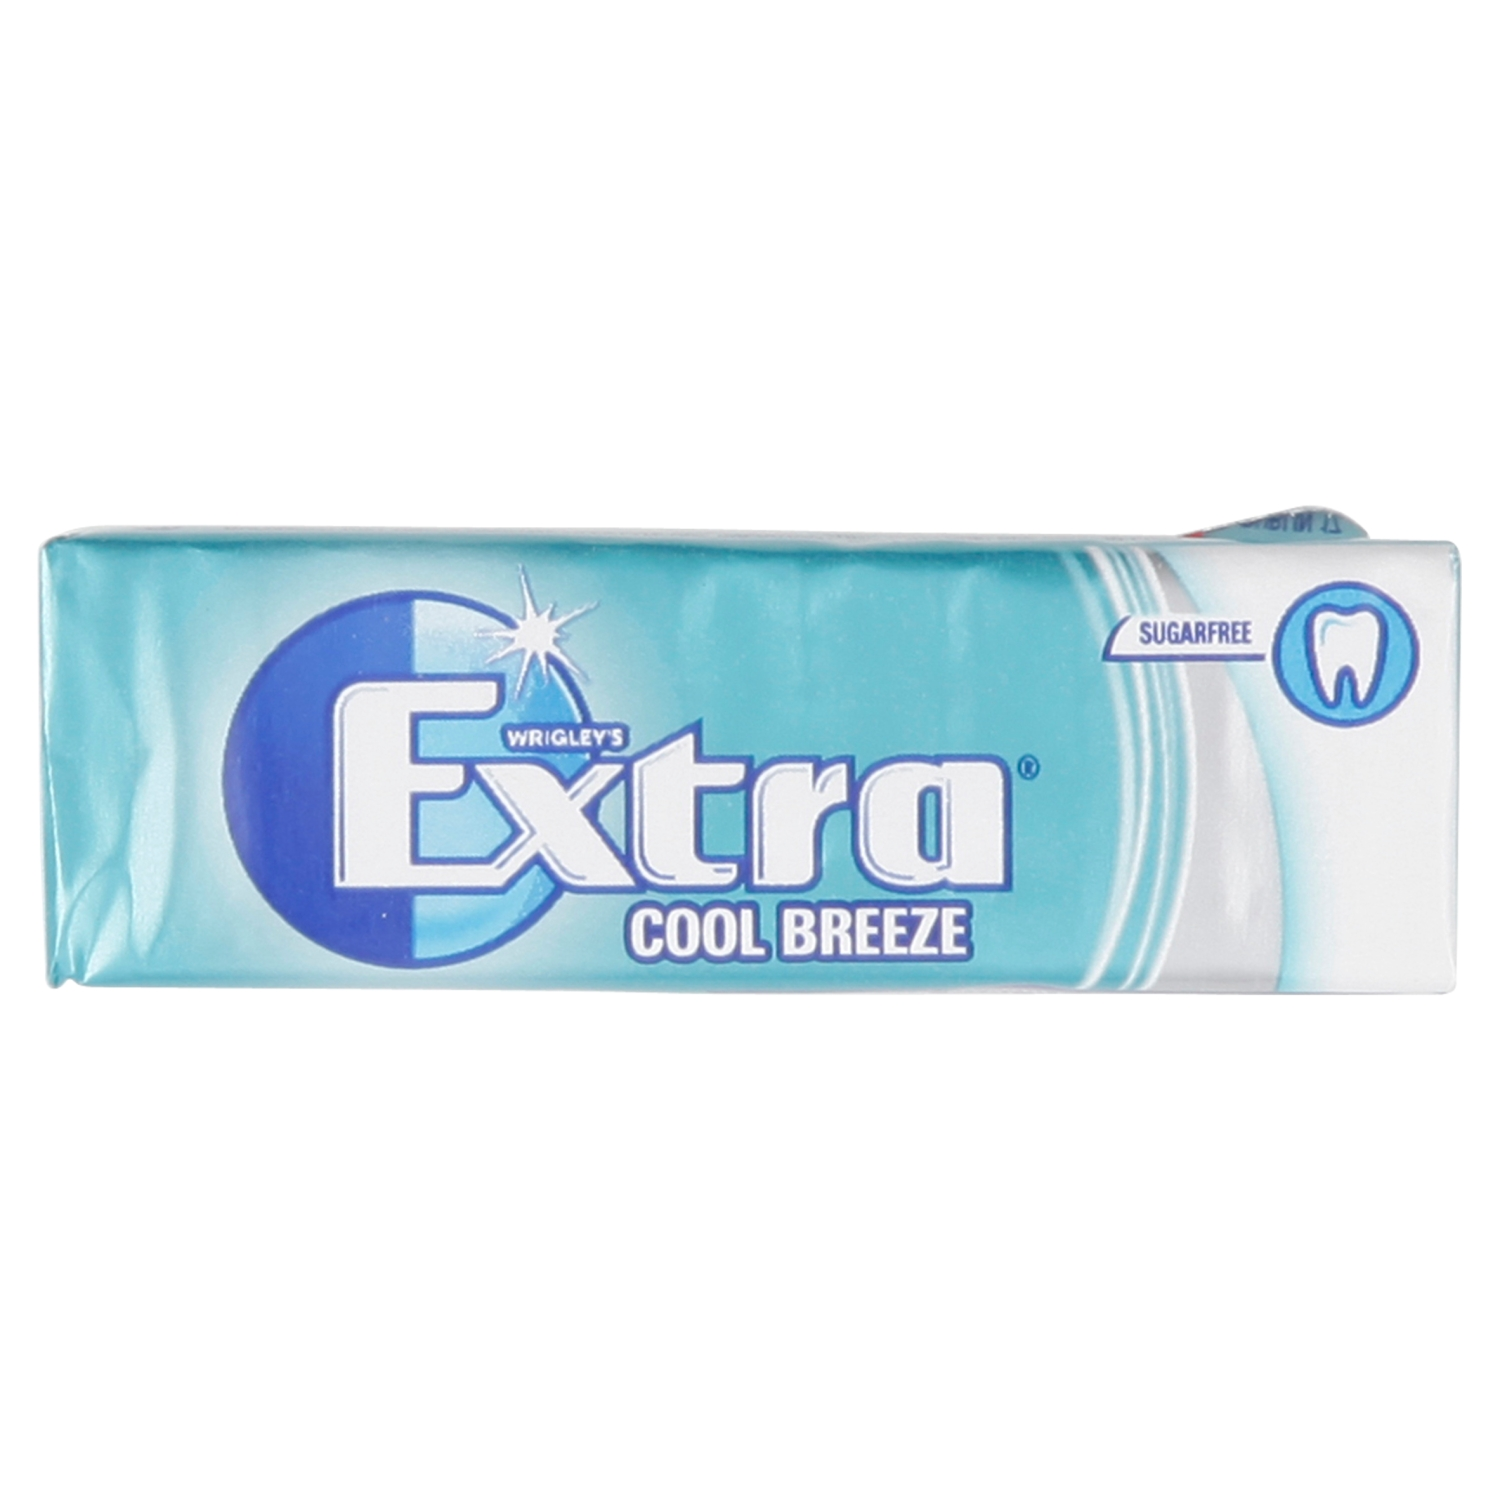 Wrigley's Extra Cool Breeze Sugarfree Chewing Gum 10 Pieces 14g